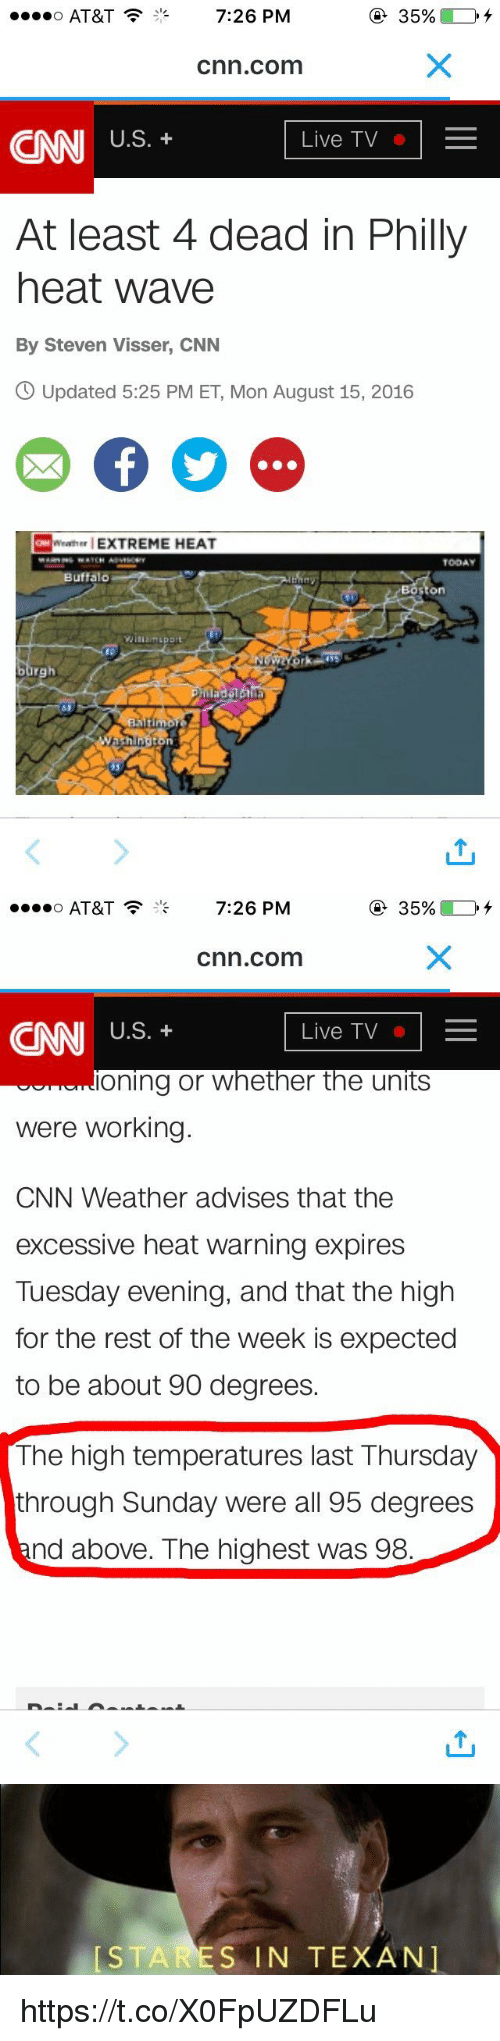 cnn.com, Waves, and Work: O AT&T 7:26 PM  Cnn Com  U.S.  Live TV  At least 4 dead in Philly  heat Wave  By Steven Visser, CNN  Updated 5:25 PM ET, Mon August 15, 2016  ow Weather  I  EXTREME HEAT  TODAY  Buffalo  Boston  burgh   3 35%.  AT&T 's 7:26 PM  Cnn com  Live TV  CNN U.S.  oning or whether the units  were working  CNN Weather advises that the  excessive heat warning expires  Tuesday evening, and that the high  for the rest of the week is expected  to be about 90 degrees.  The high temperatures last Thursday  through Sunday were all 95 degrees  nd above. The highest was 98.   ESTA  S IN TEXAN https://t.co/X0FpUZDFLu